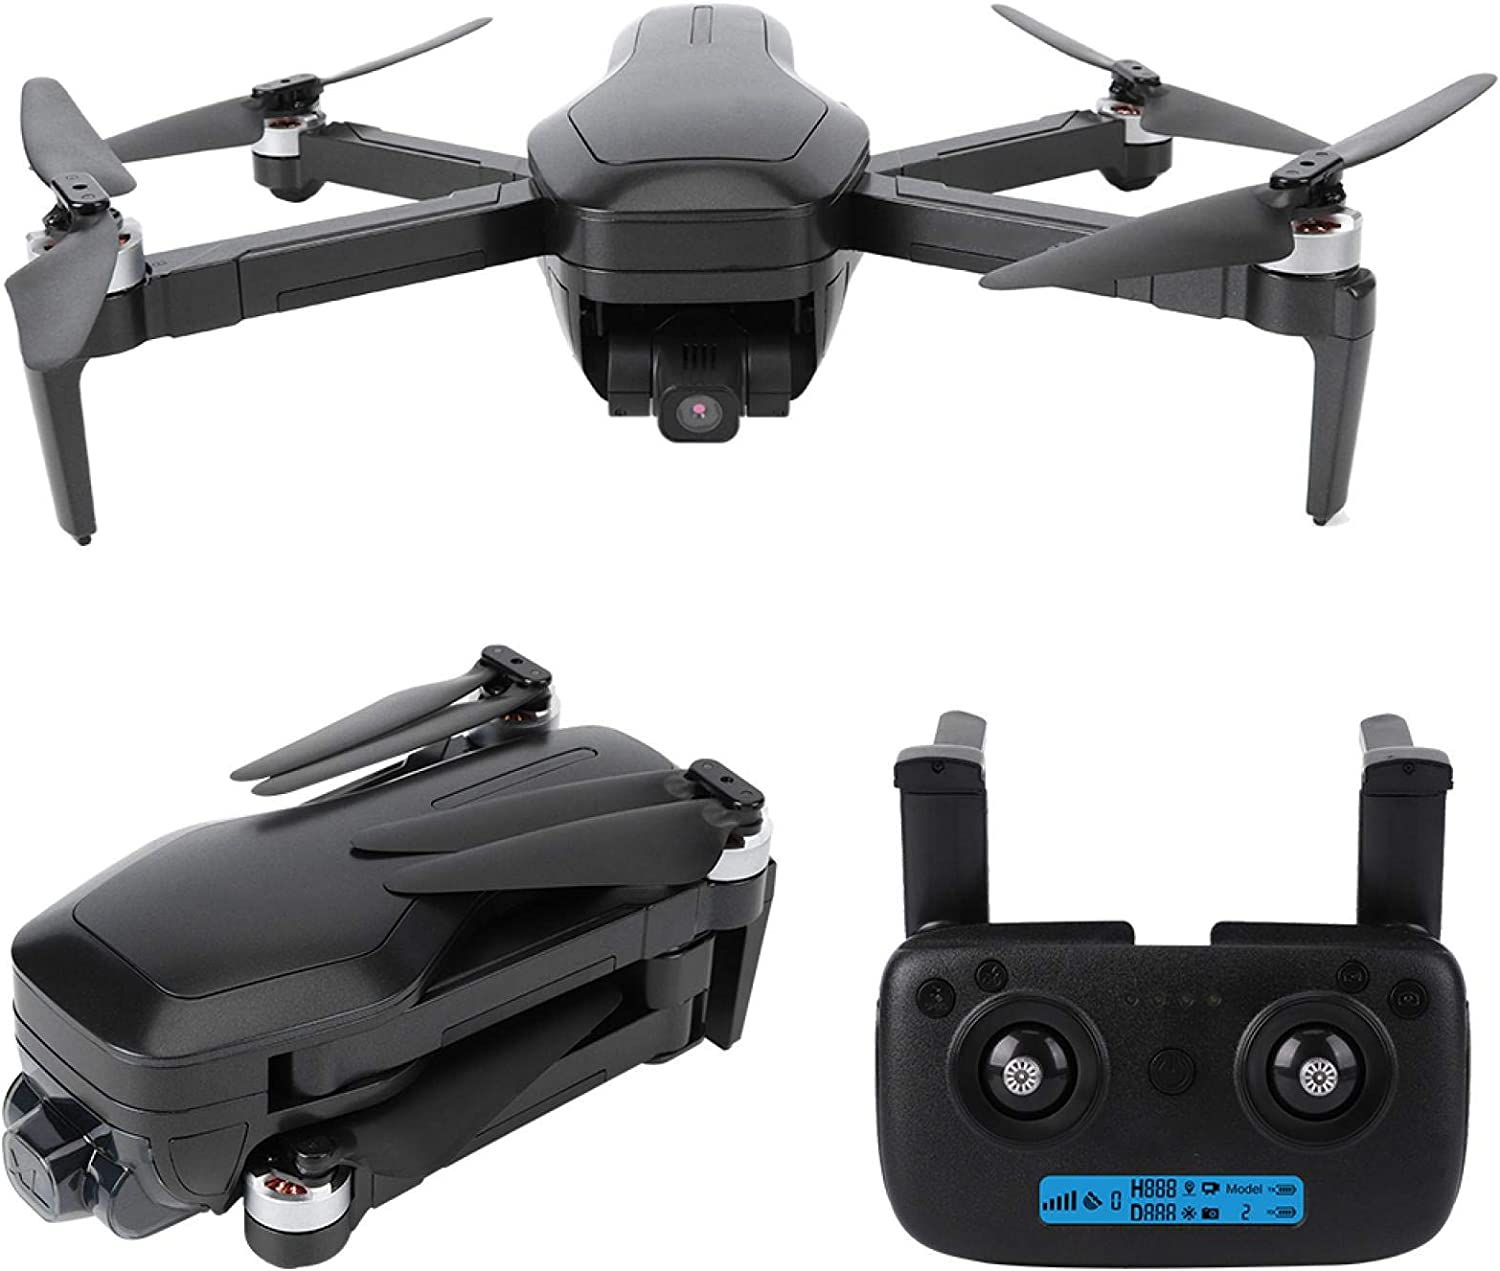 Cheap super special price Max 50% OFF Germerse Drone 193PRO GPS fo Hold Altitude TwoAxle